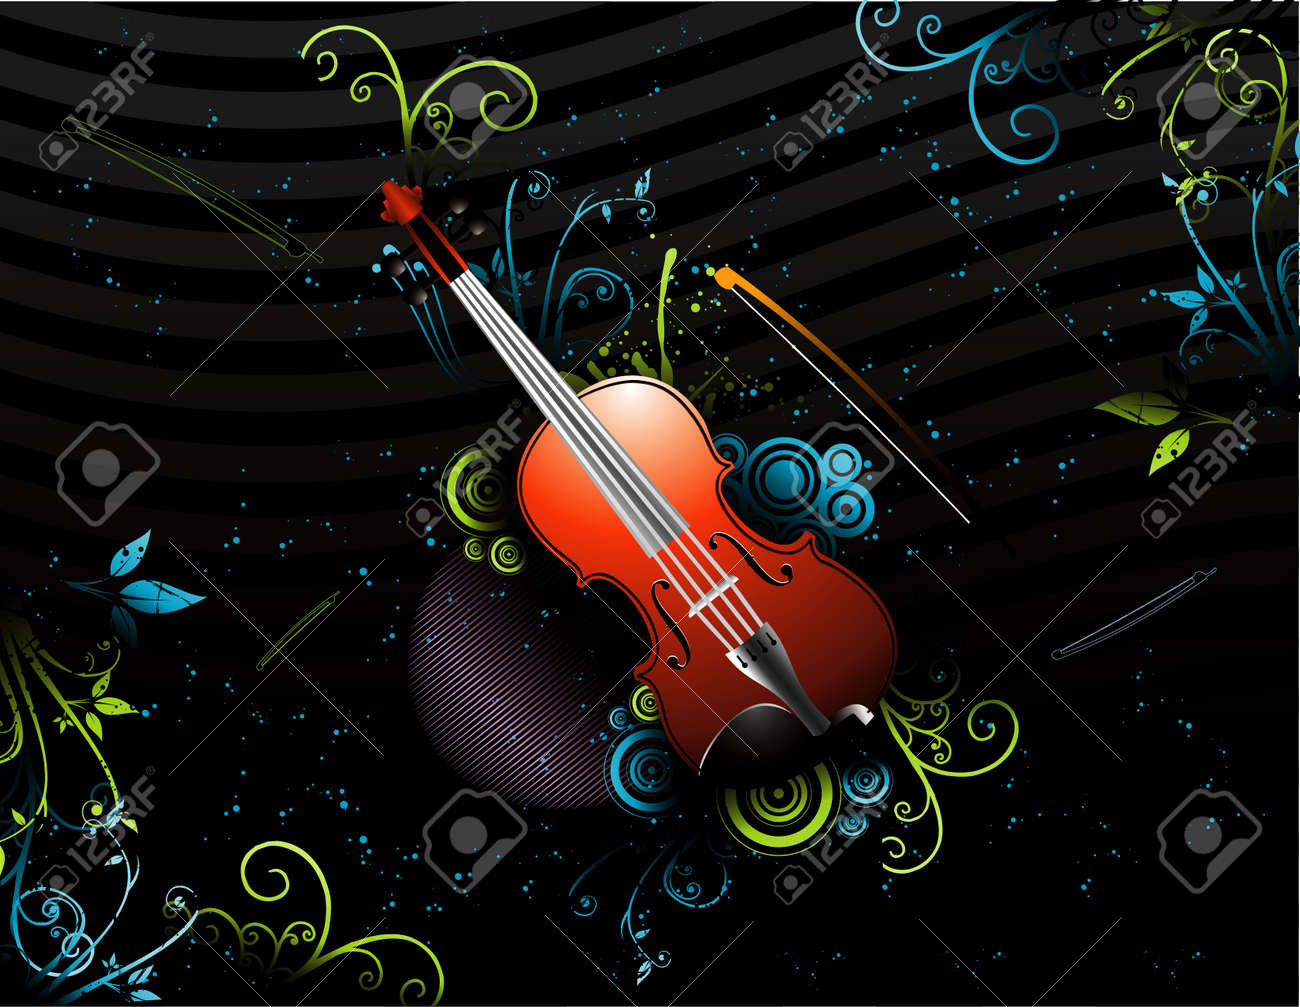 Cool Music Background Images